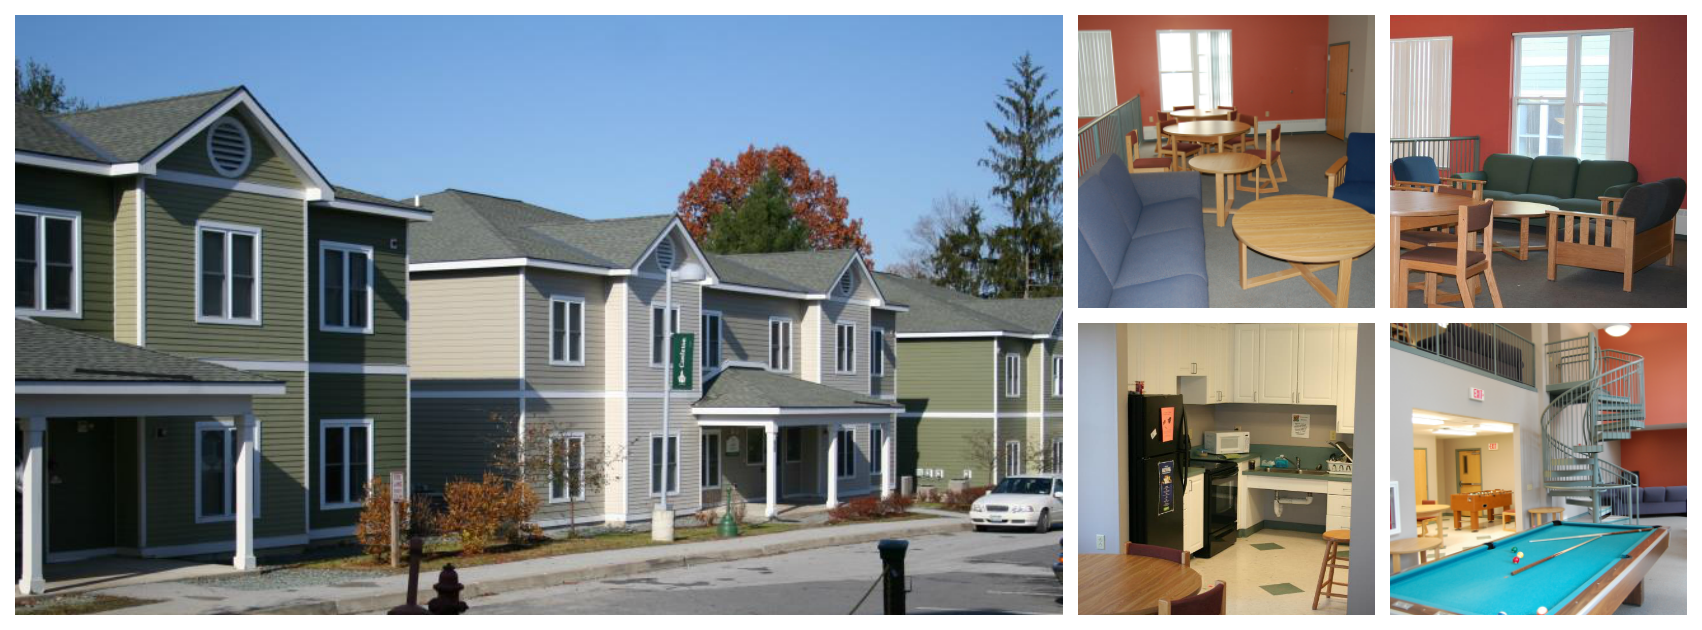 Houses Collage kitchen lounge and exterior